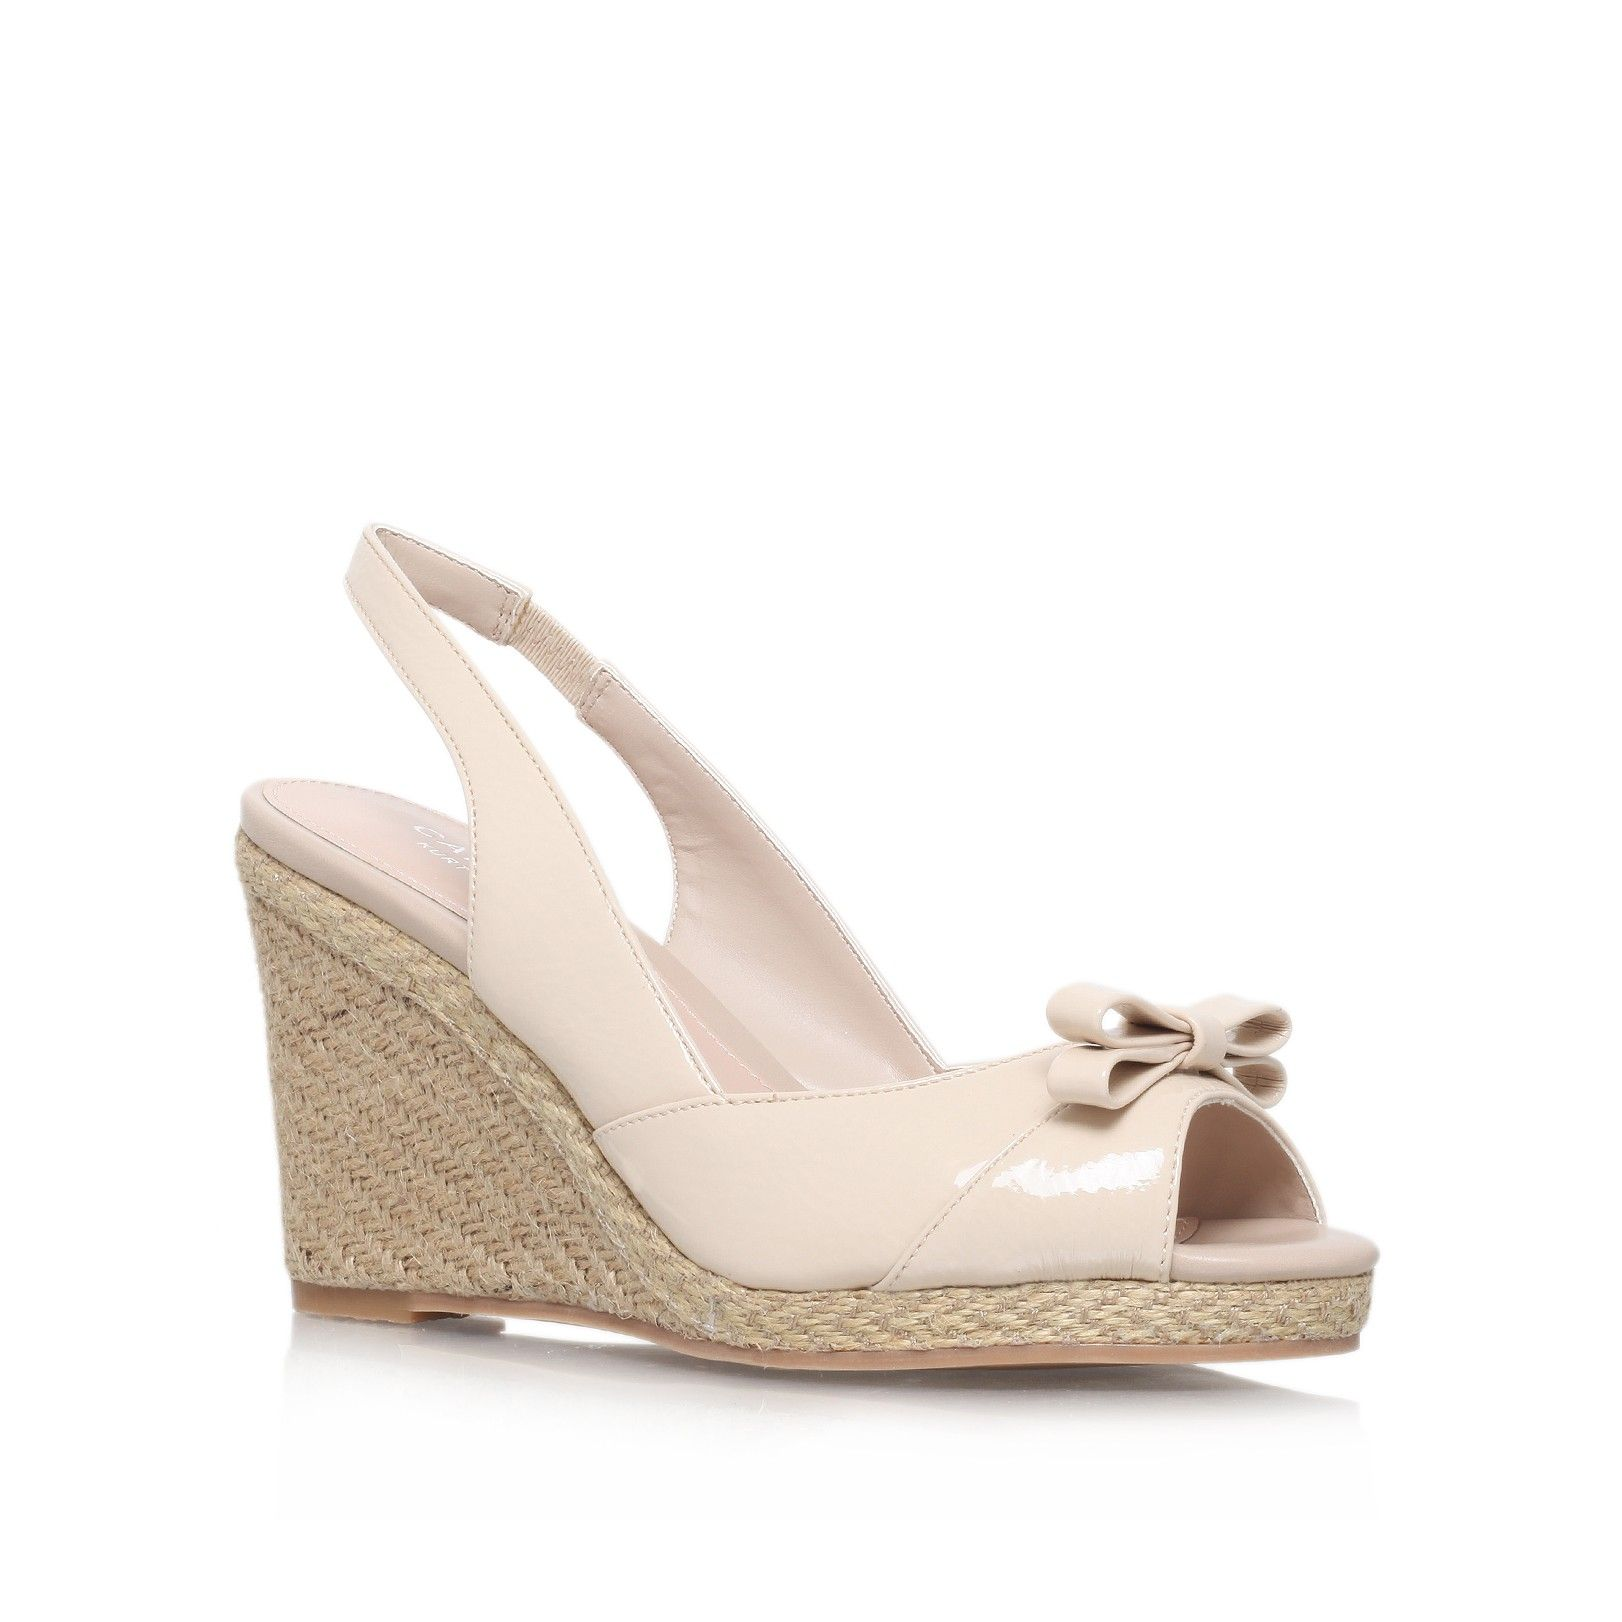 923486143f Suzie by Carvela Kurt Geiger from @loveshoeaholics, only . Get up to 75%  off the brands you love at shoeaholics